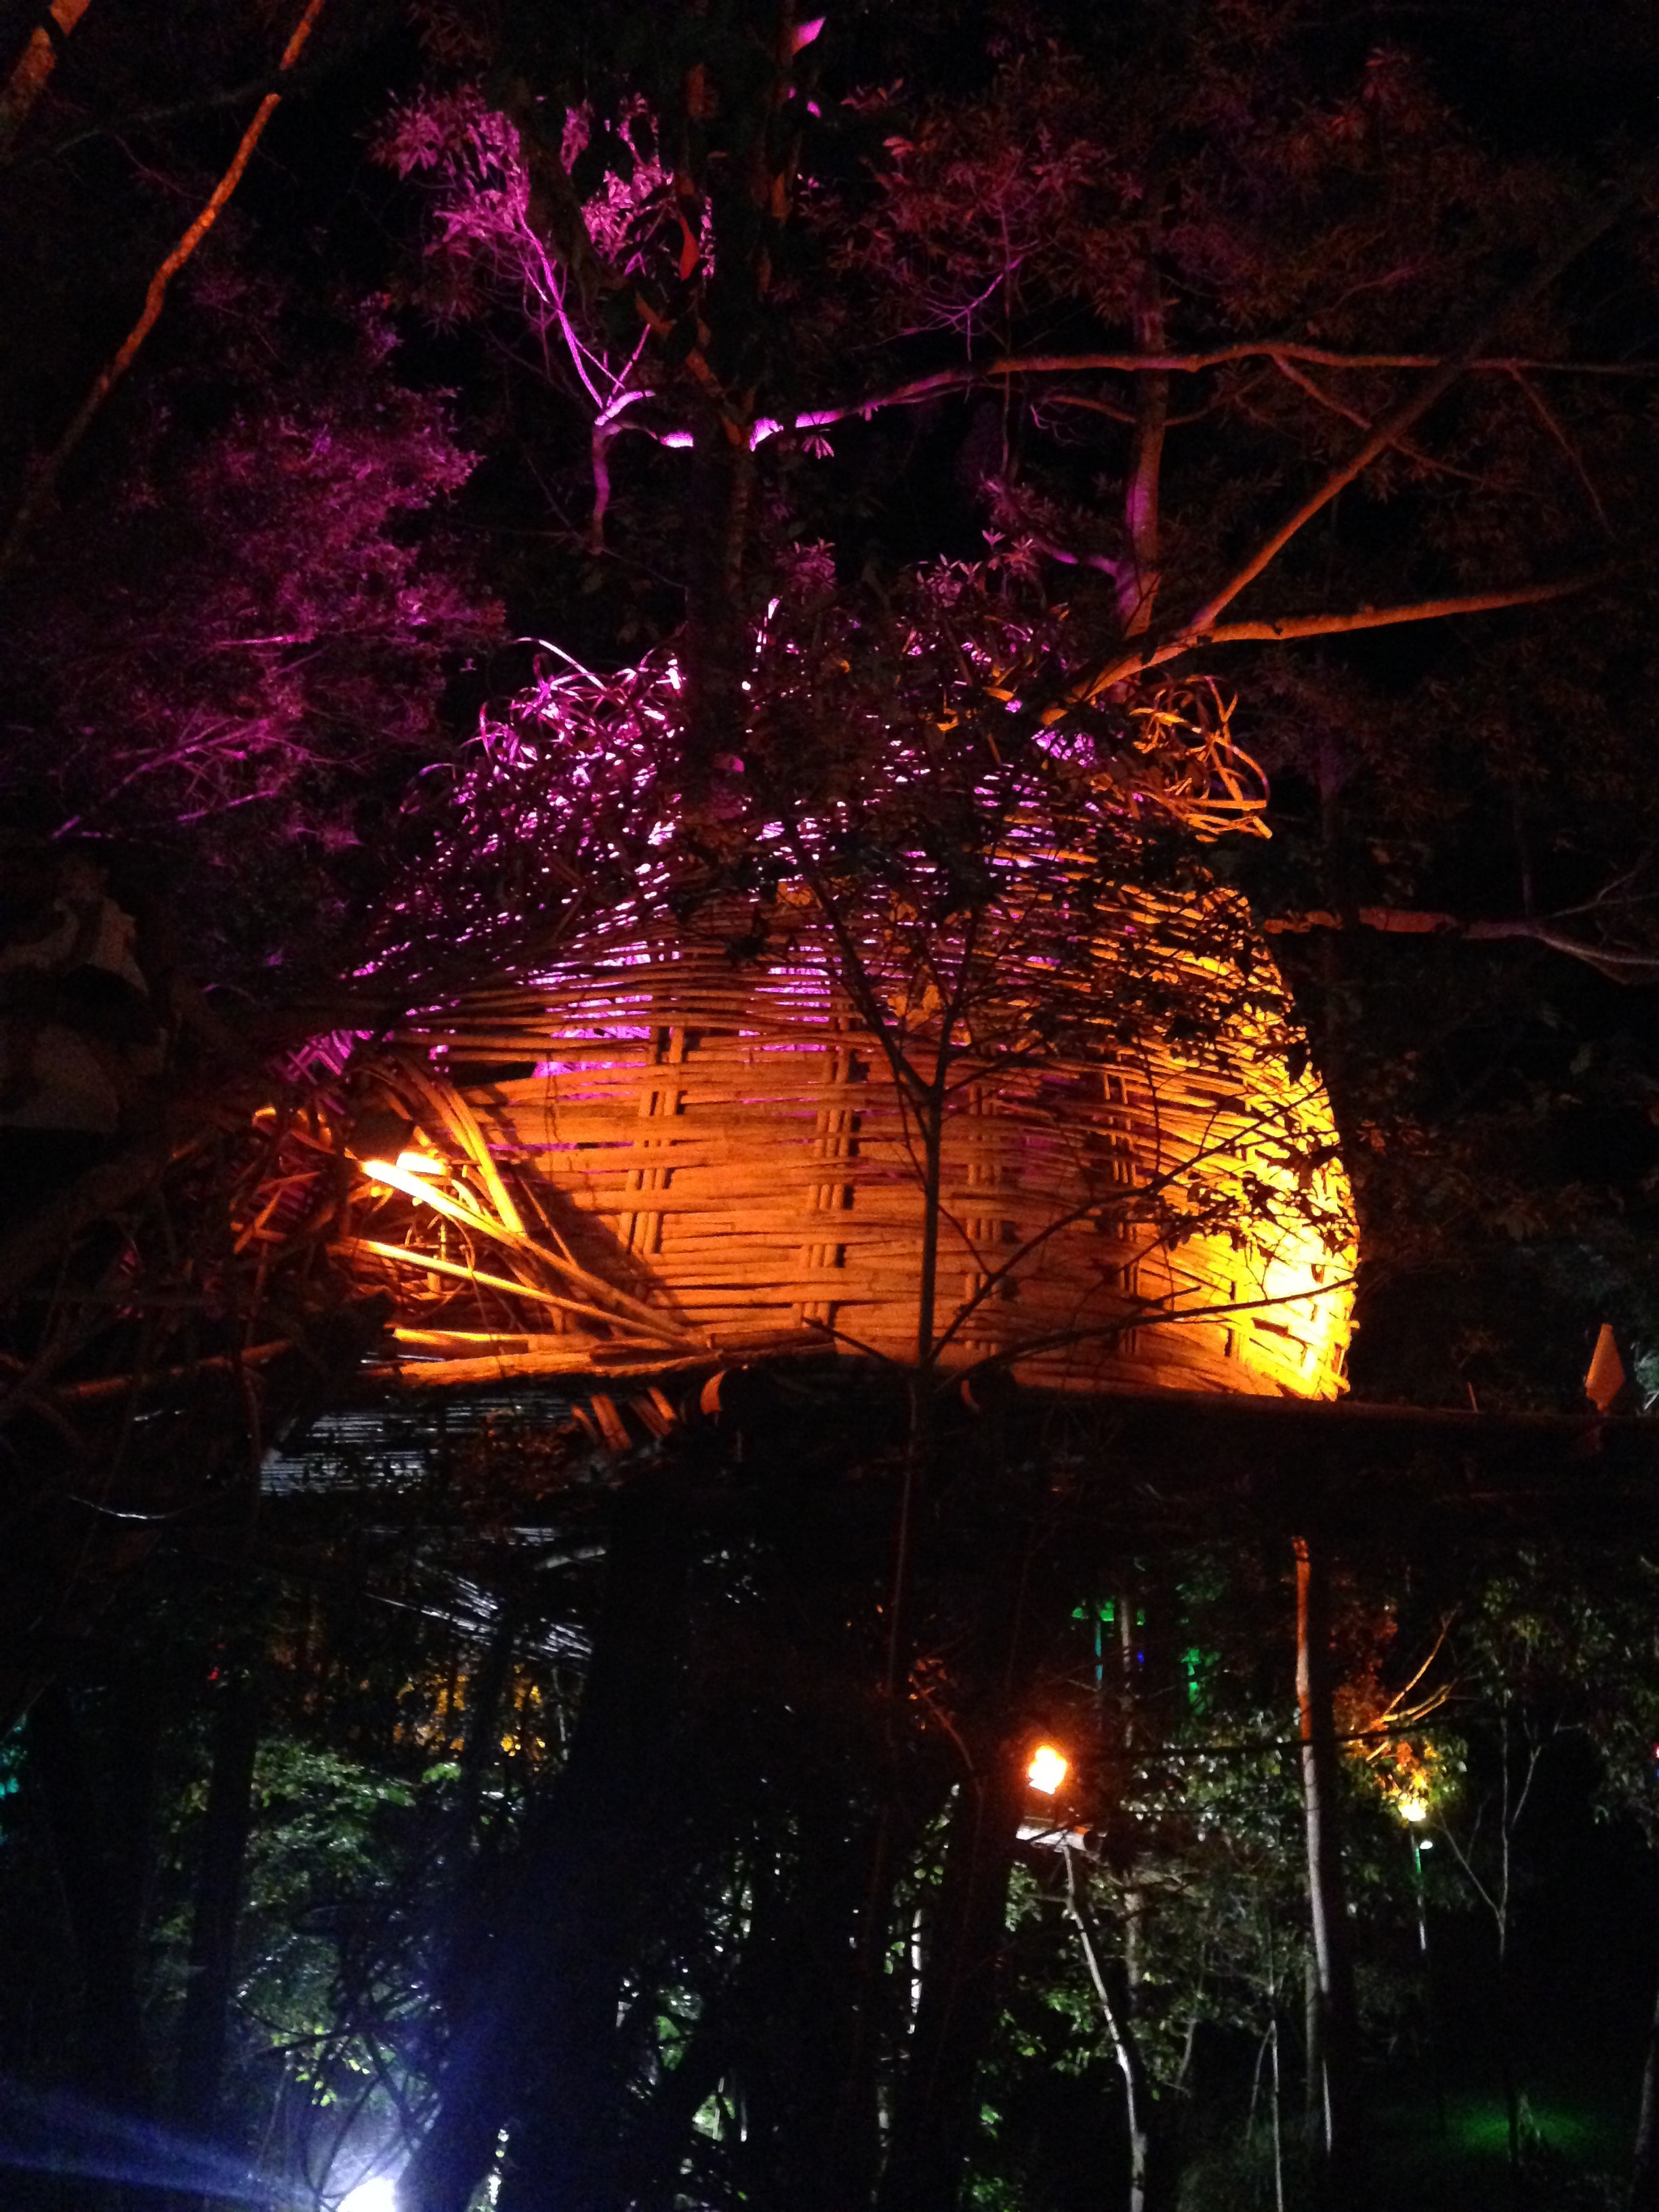 The magicl treehouse